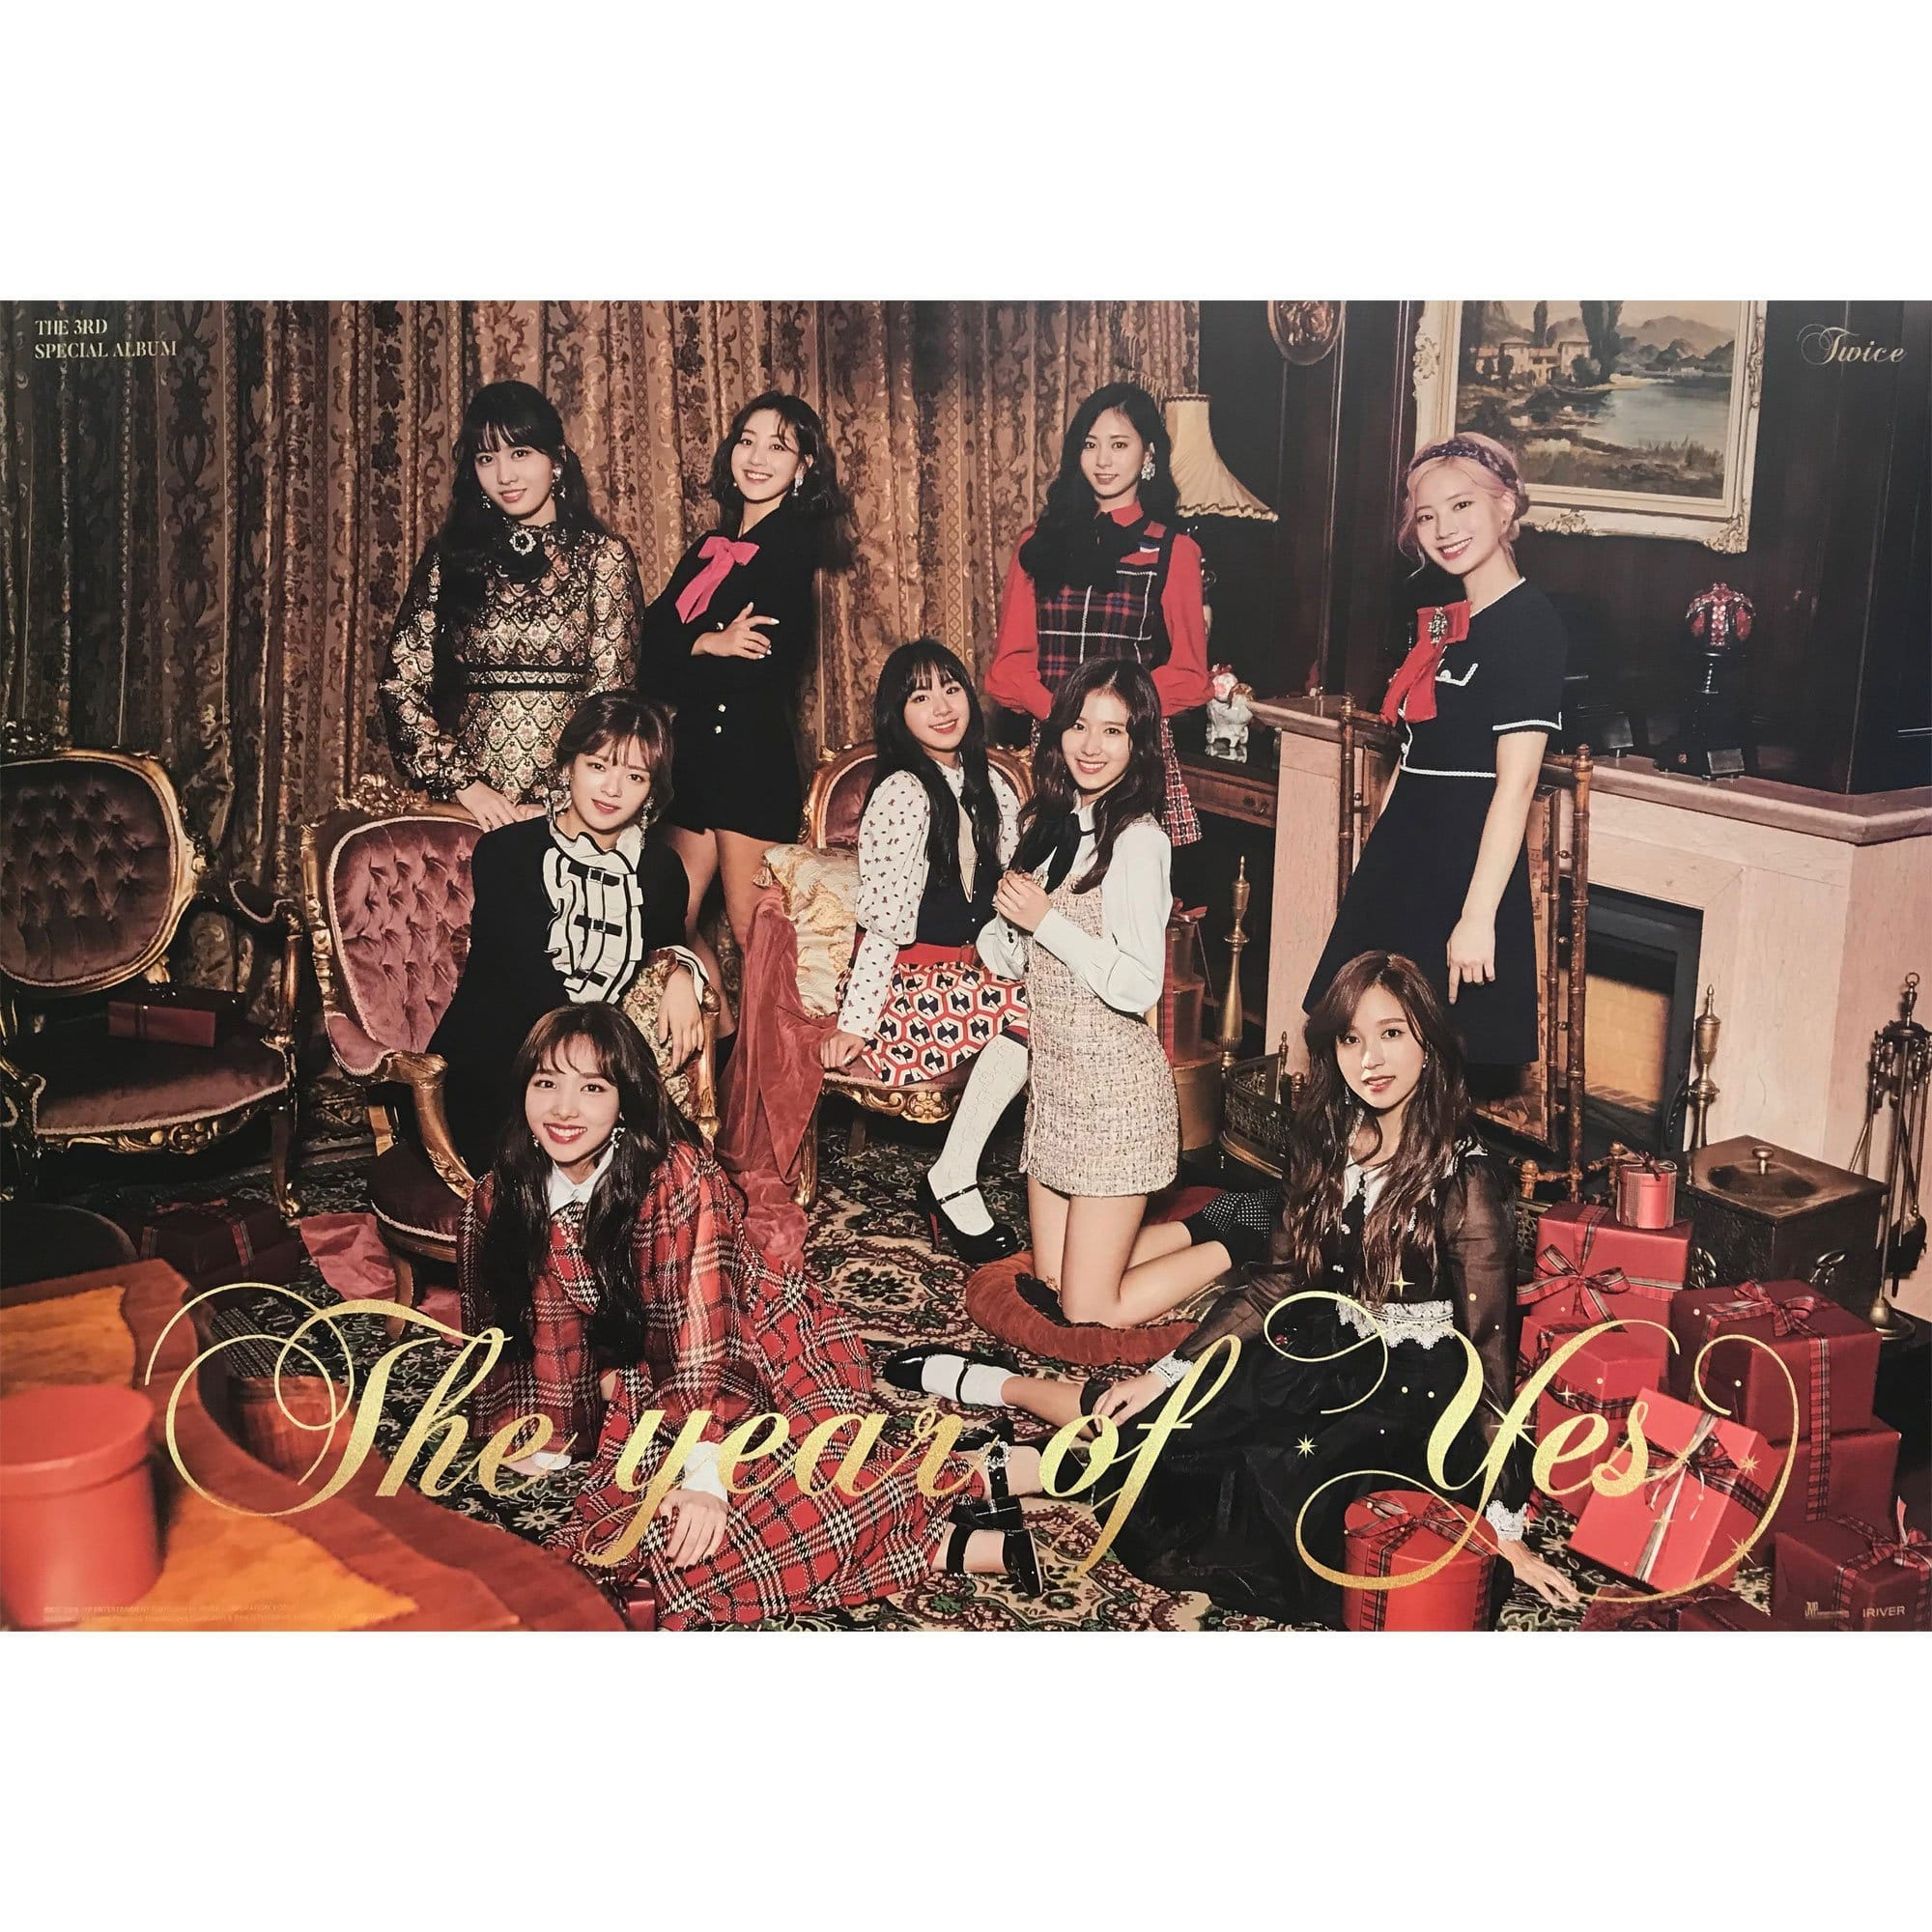 트와이스 | TWICE | THE 3RD SPECIAL ALBUM | POSTER